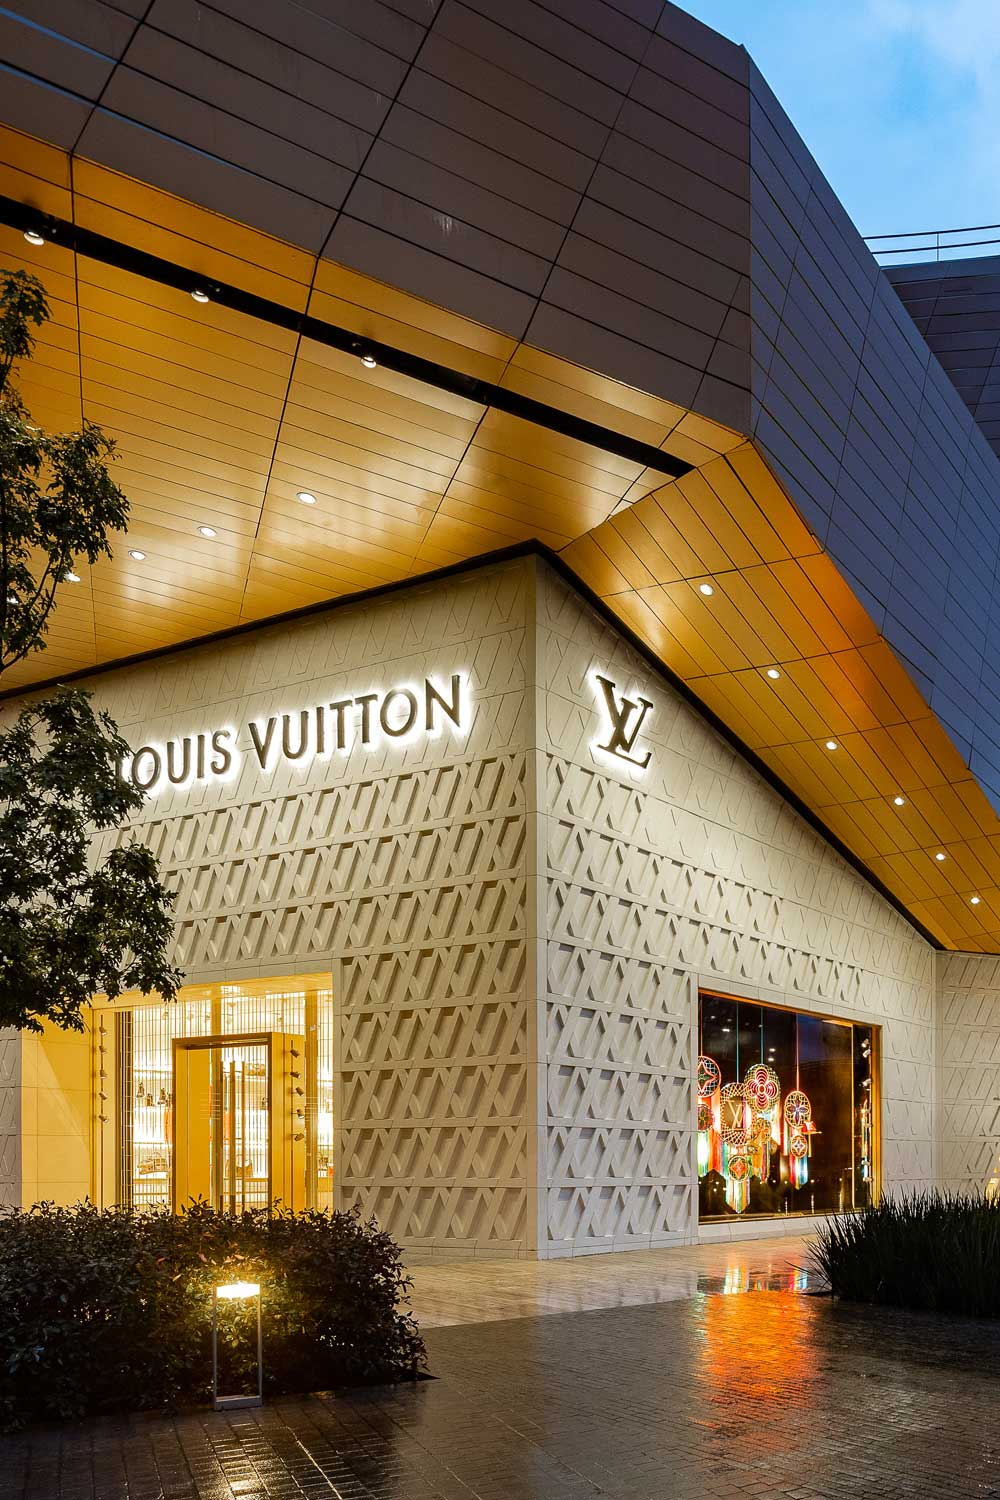 Louis Vuitton Artz Pedregal